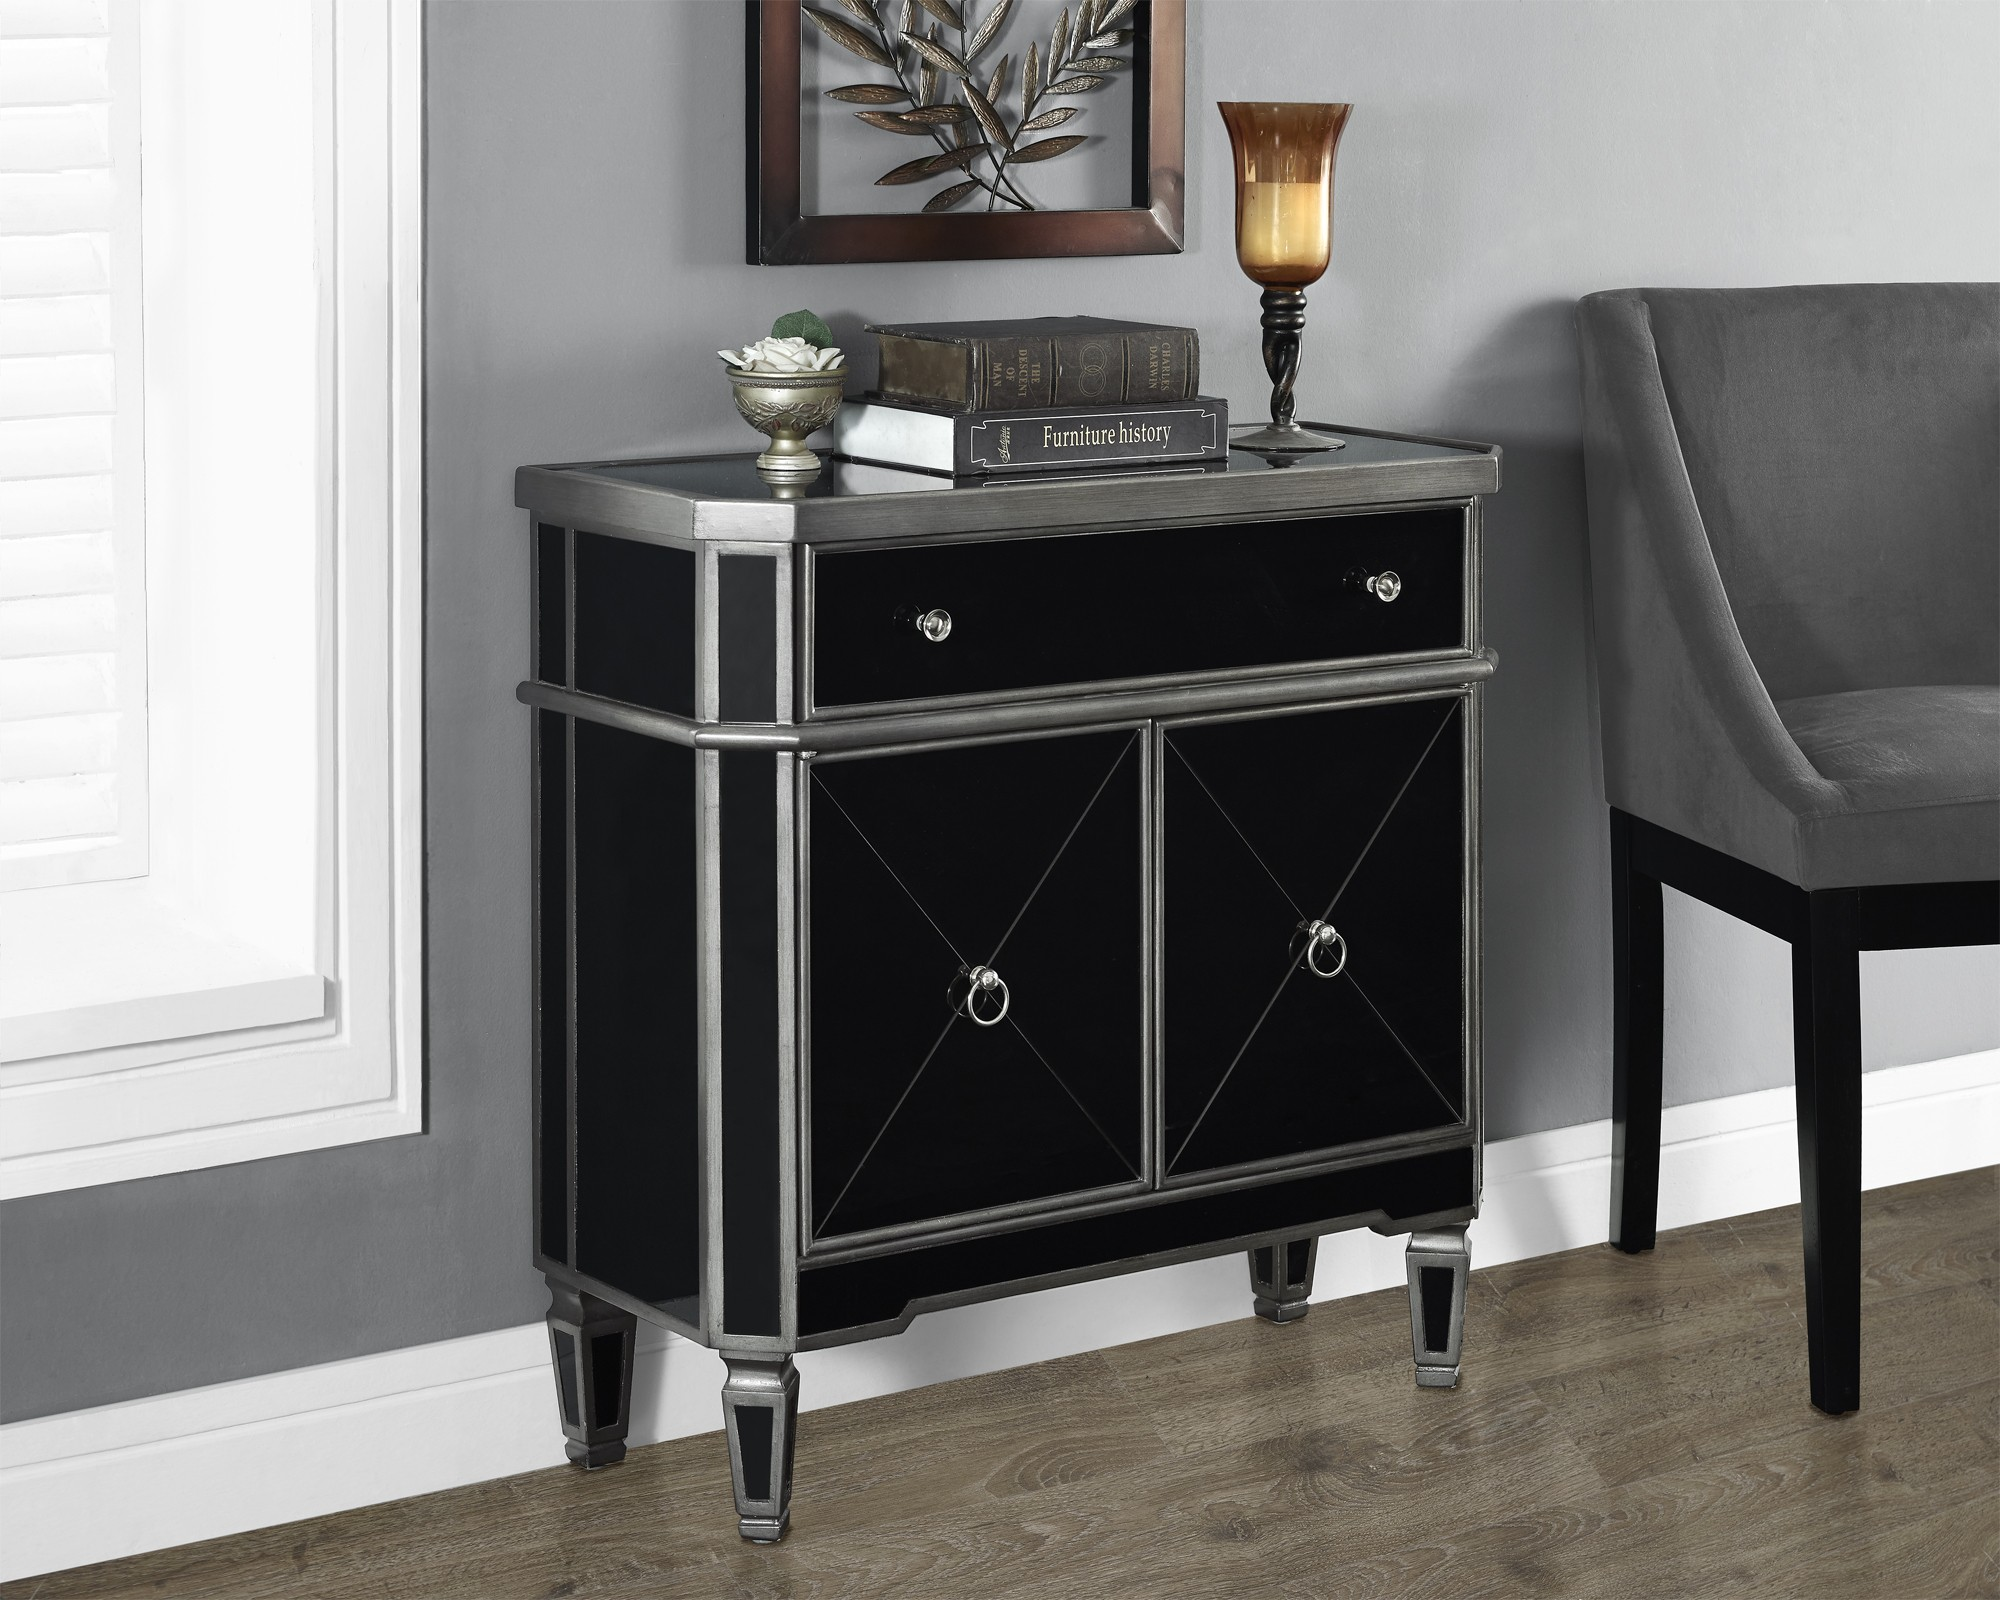 ikea square dining table the fantastic awesome skinny end nightstand round drawer bedside charcoal grey black mirrored accent with wooden floor and wall for home decoration ideas